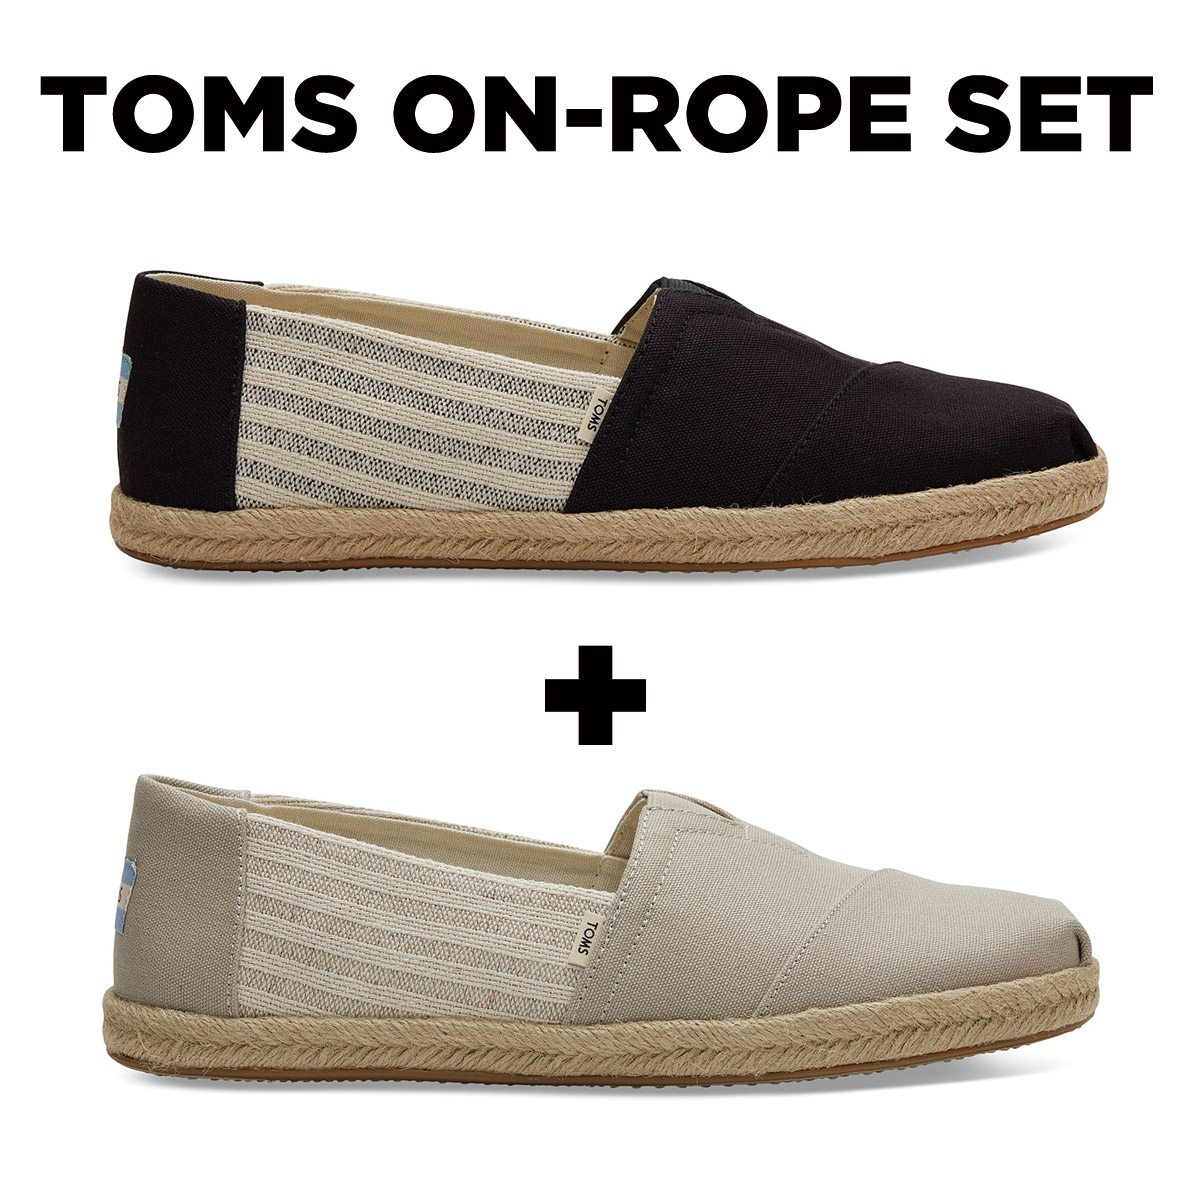 TOMS ON-ROPE MENS-E SET